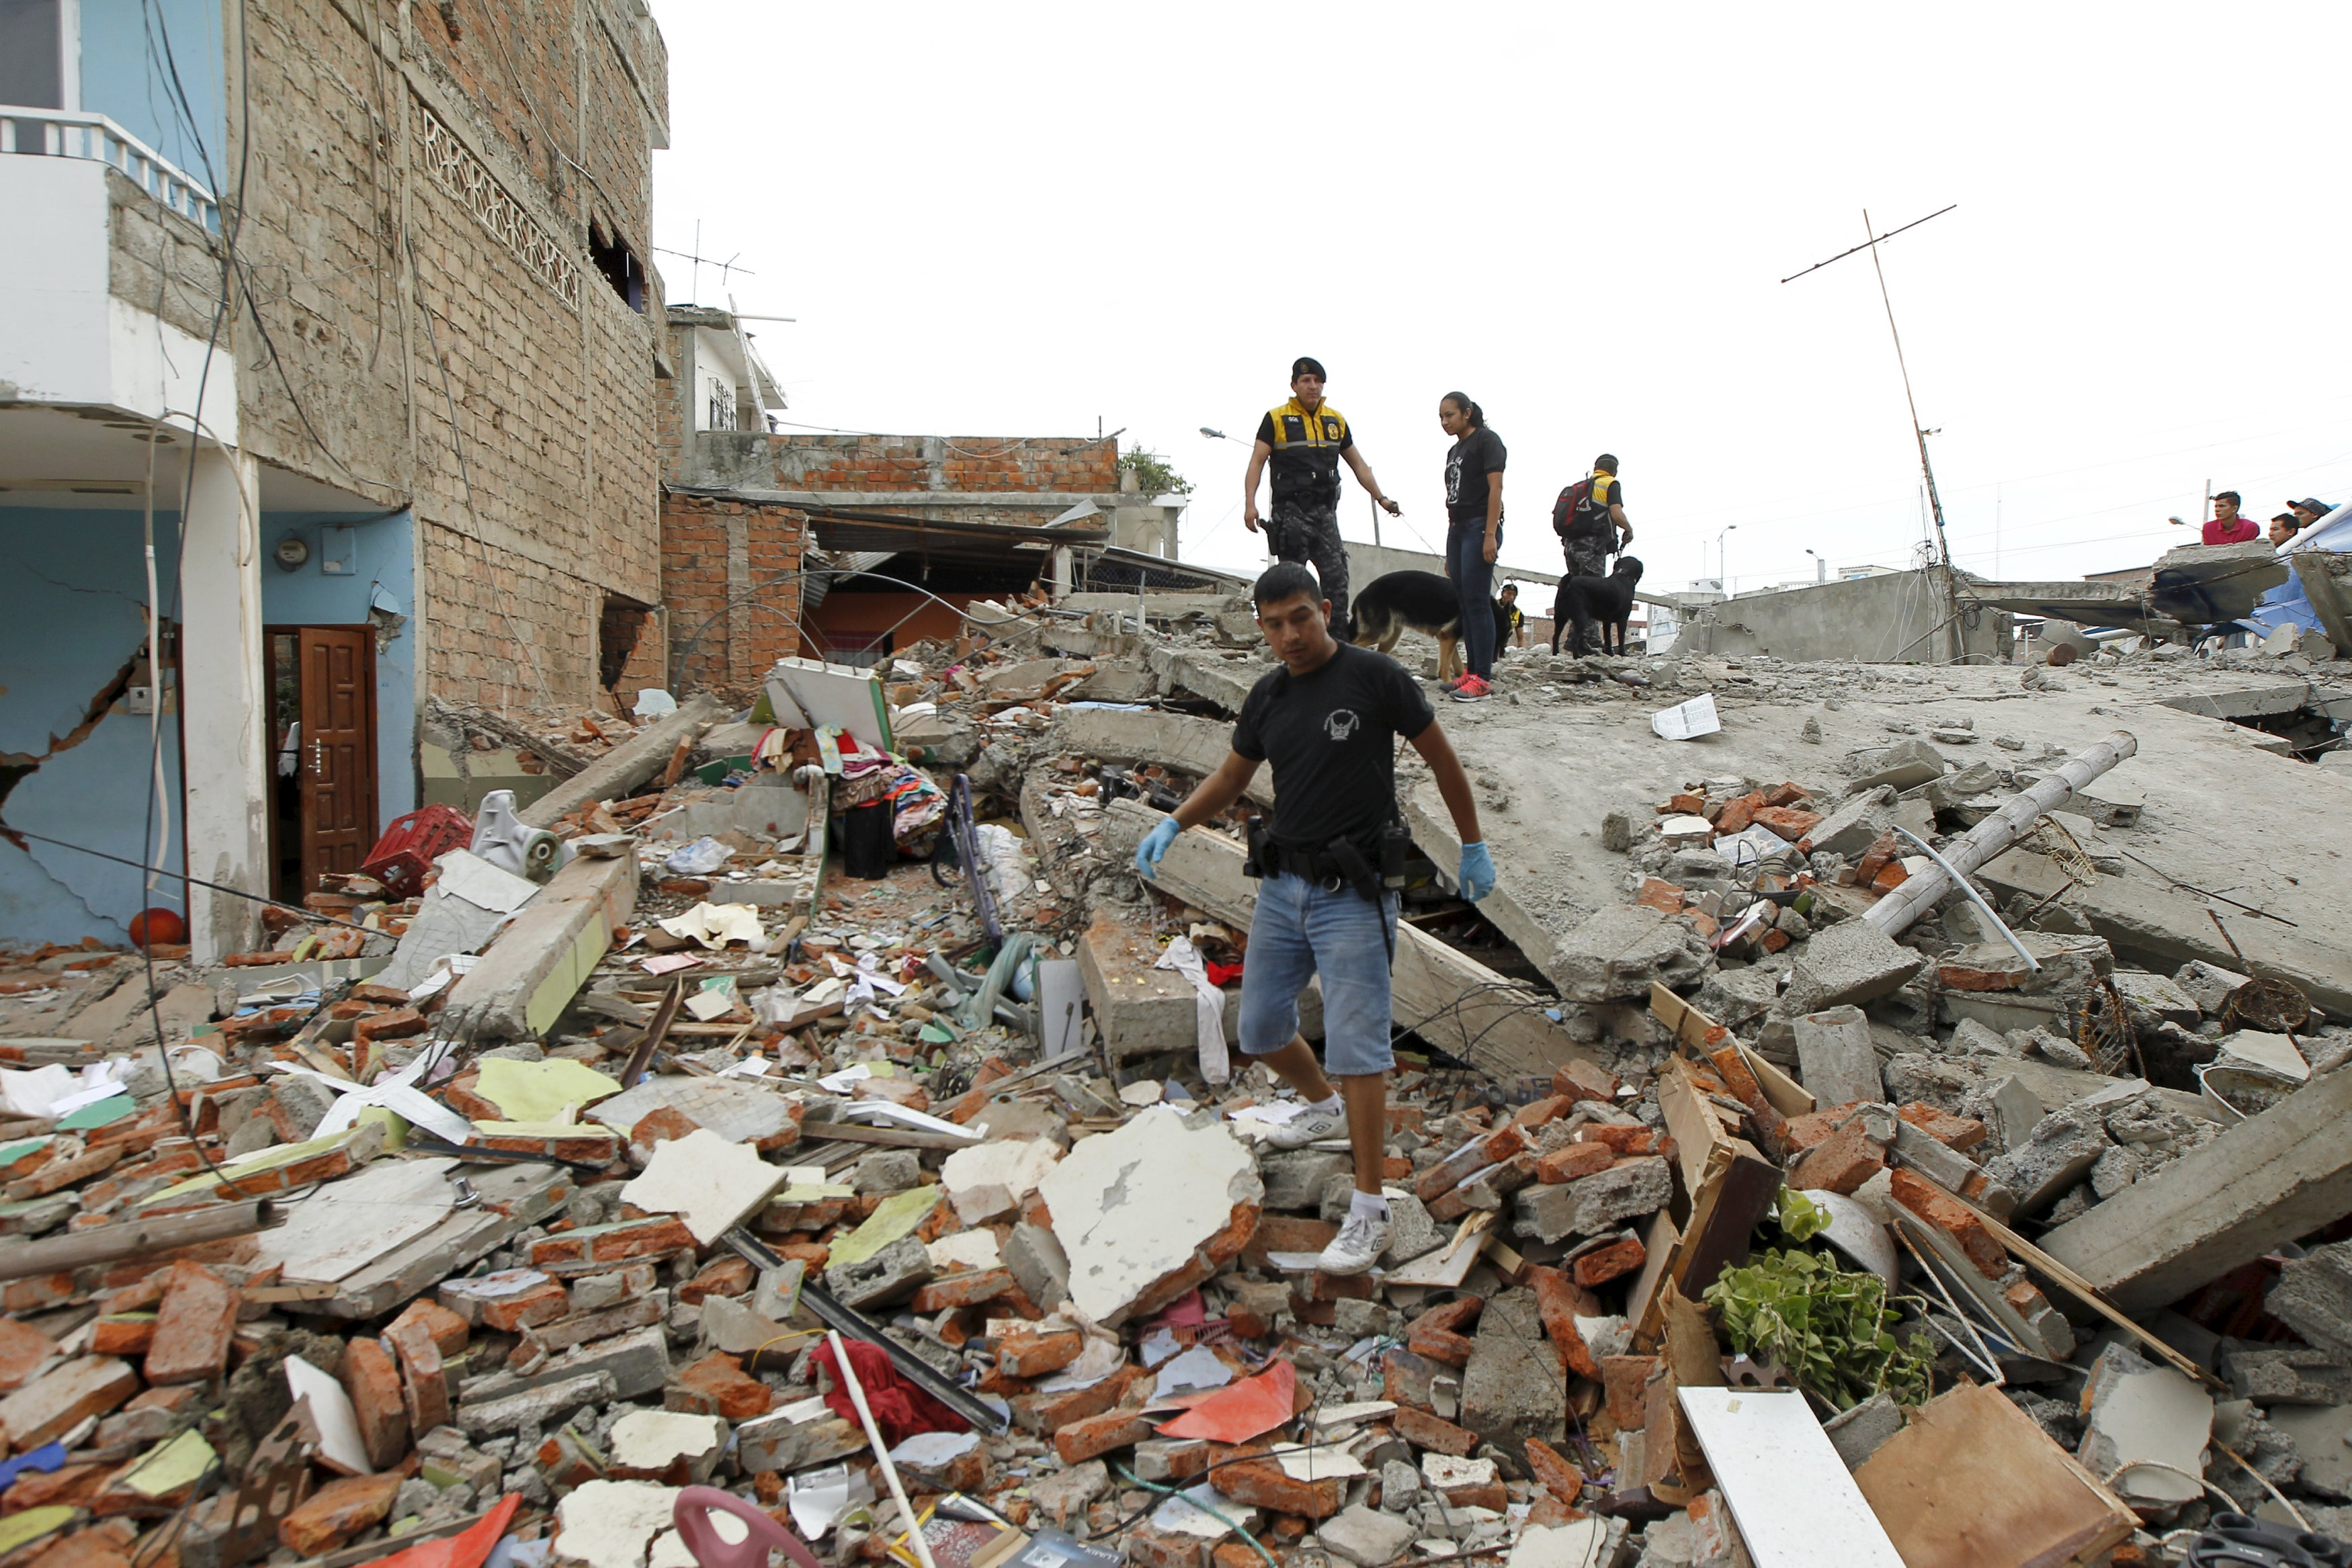 Red Cross members, military and police officers work at a collapsed area after an earthquake struck off the Pacific coast, at Tarqui neighborhood in Manta